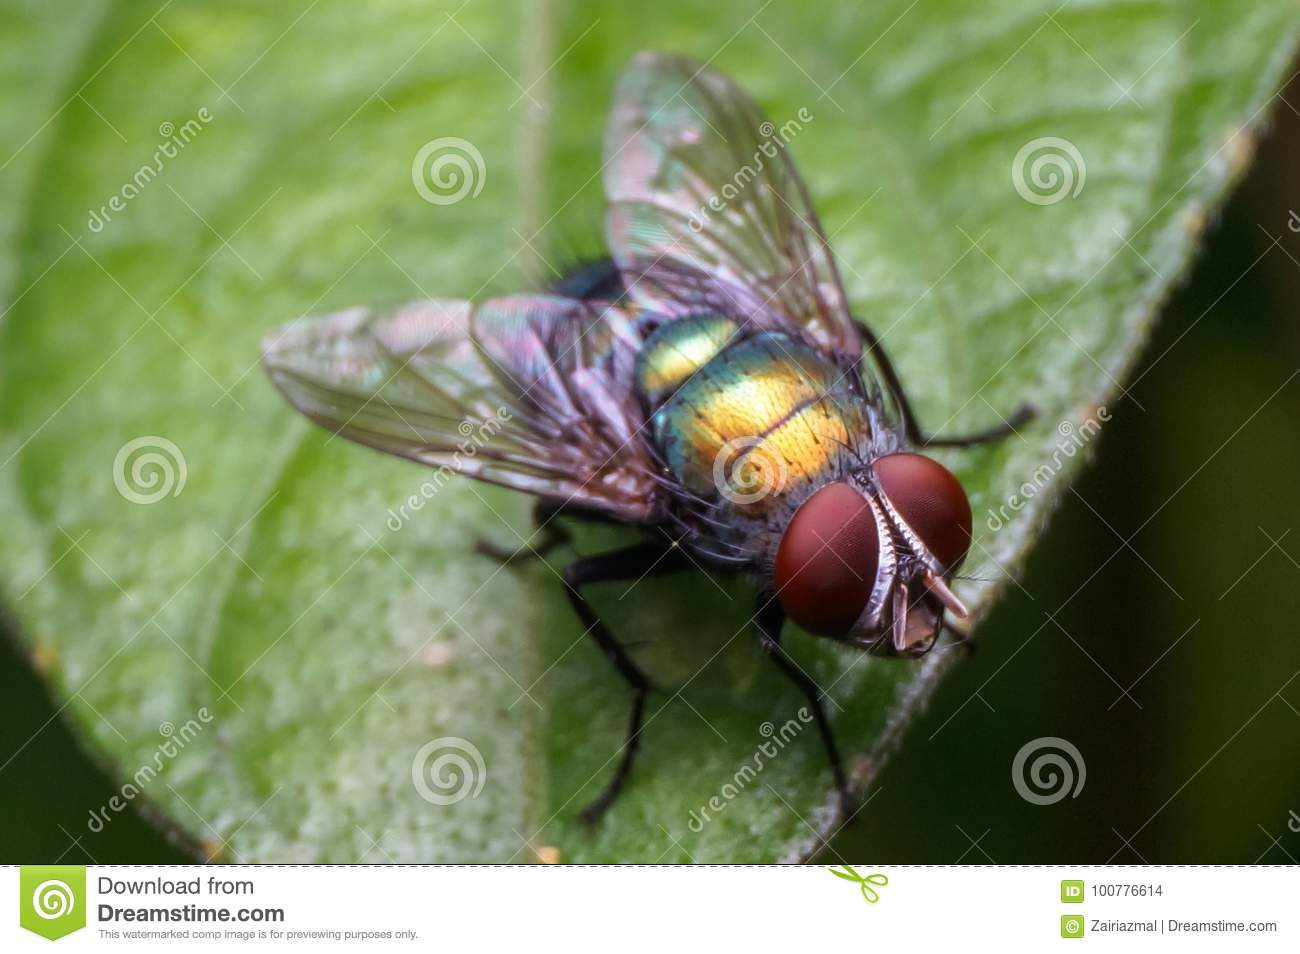 Close up shot of a common house fly standing on grass